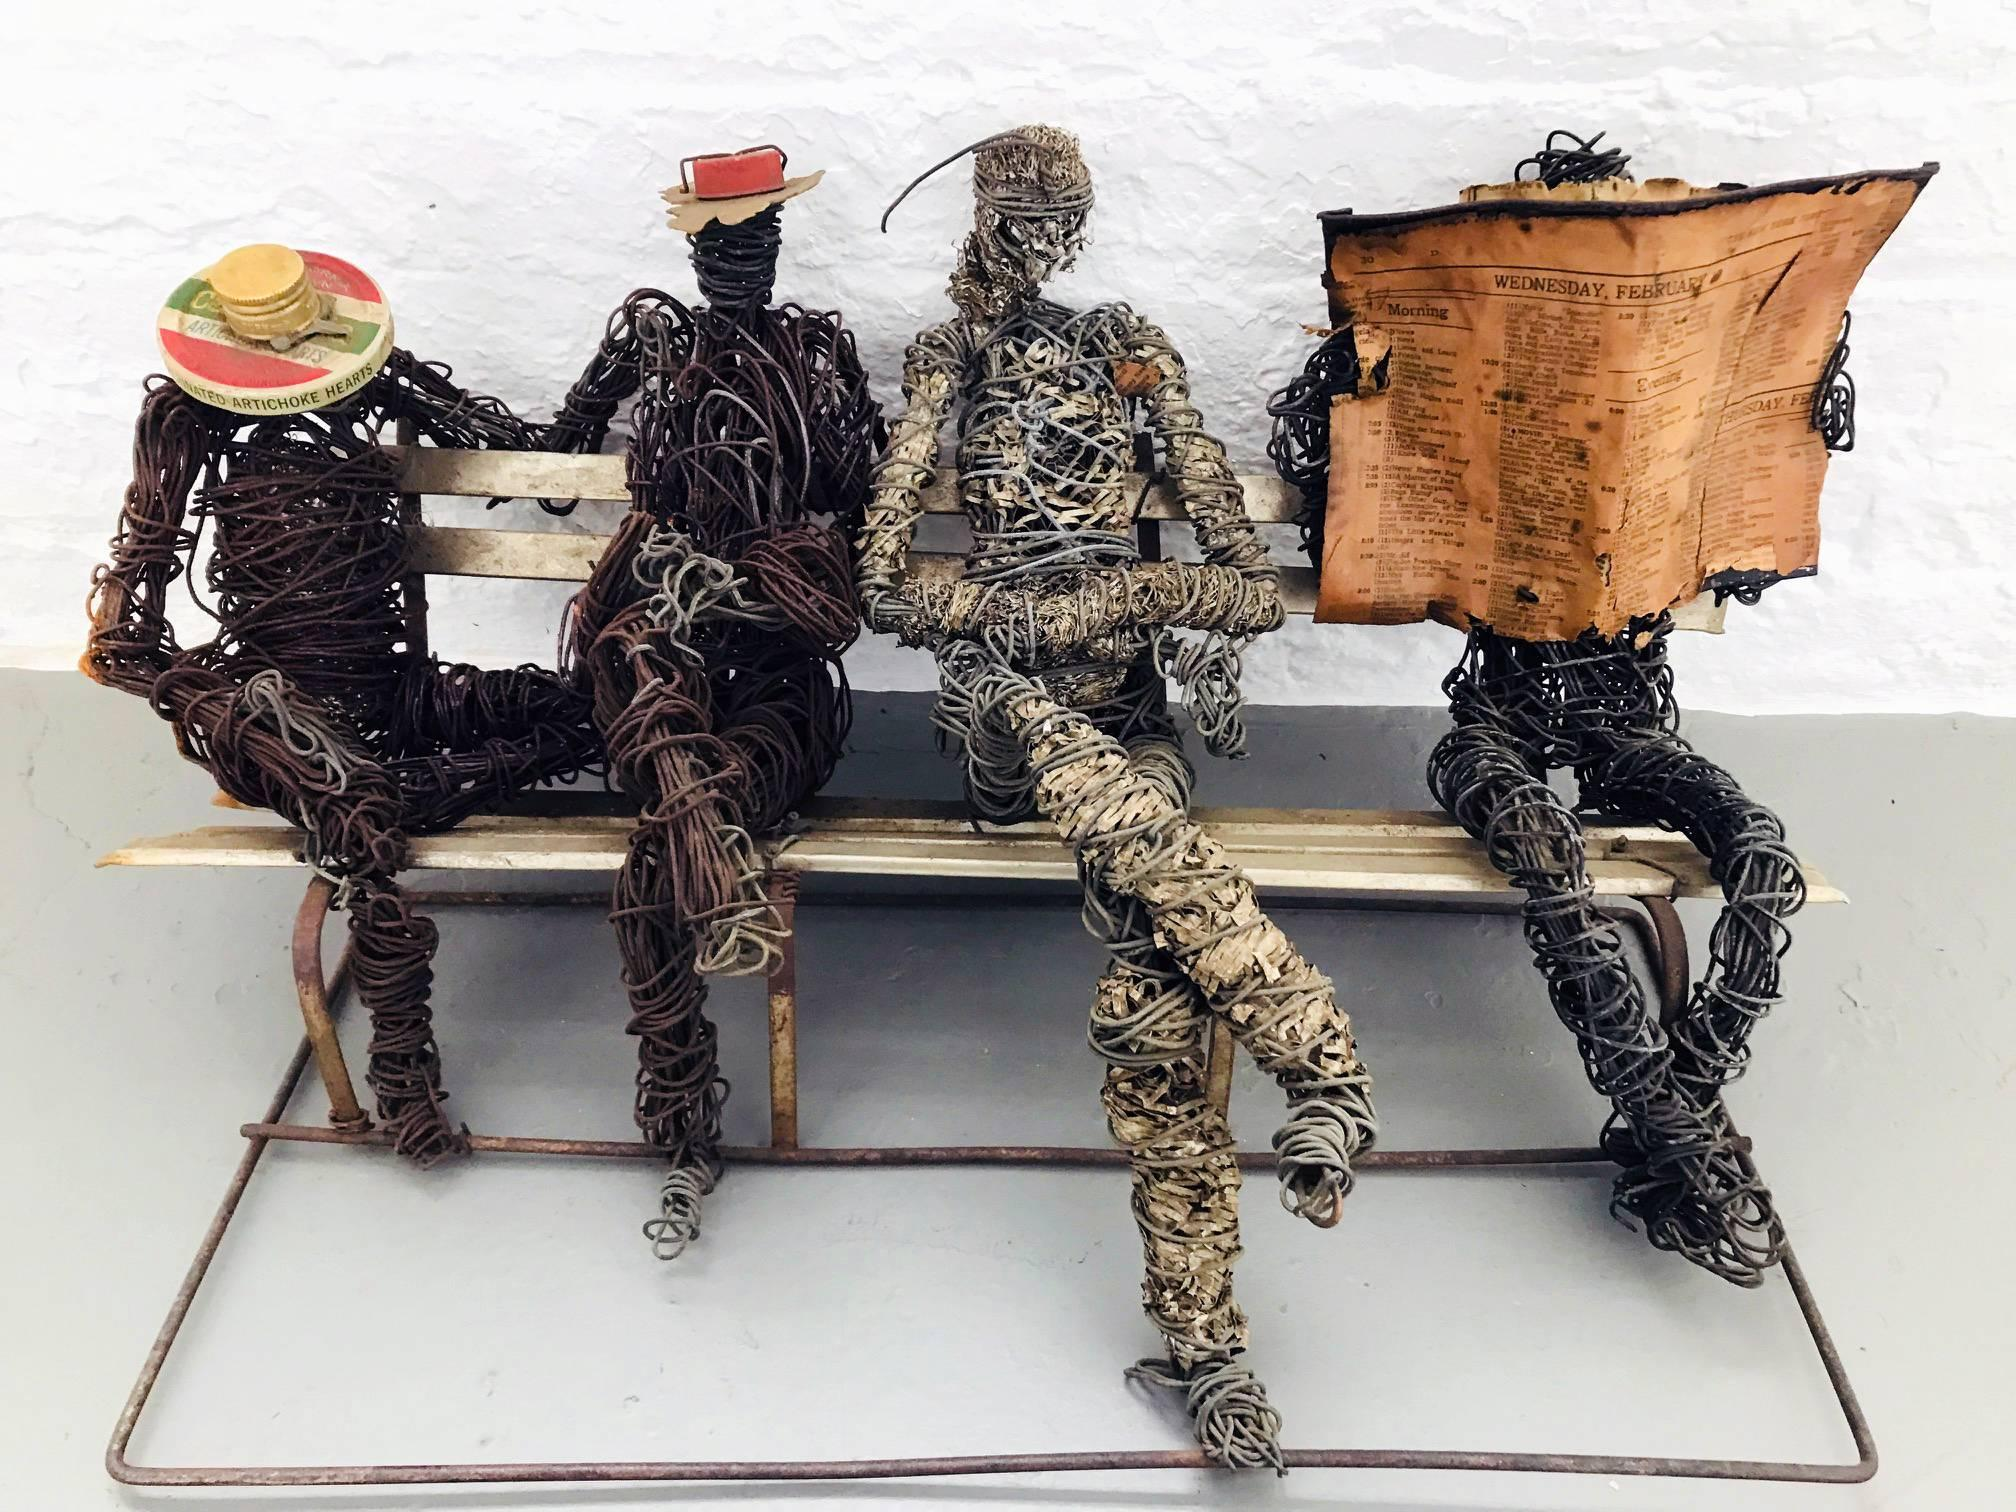 Untitled (4 Figures on a Bench)